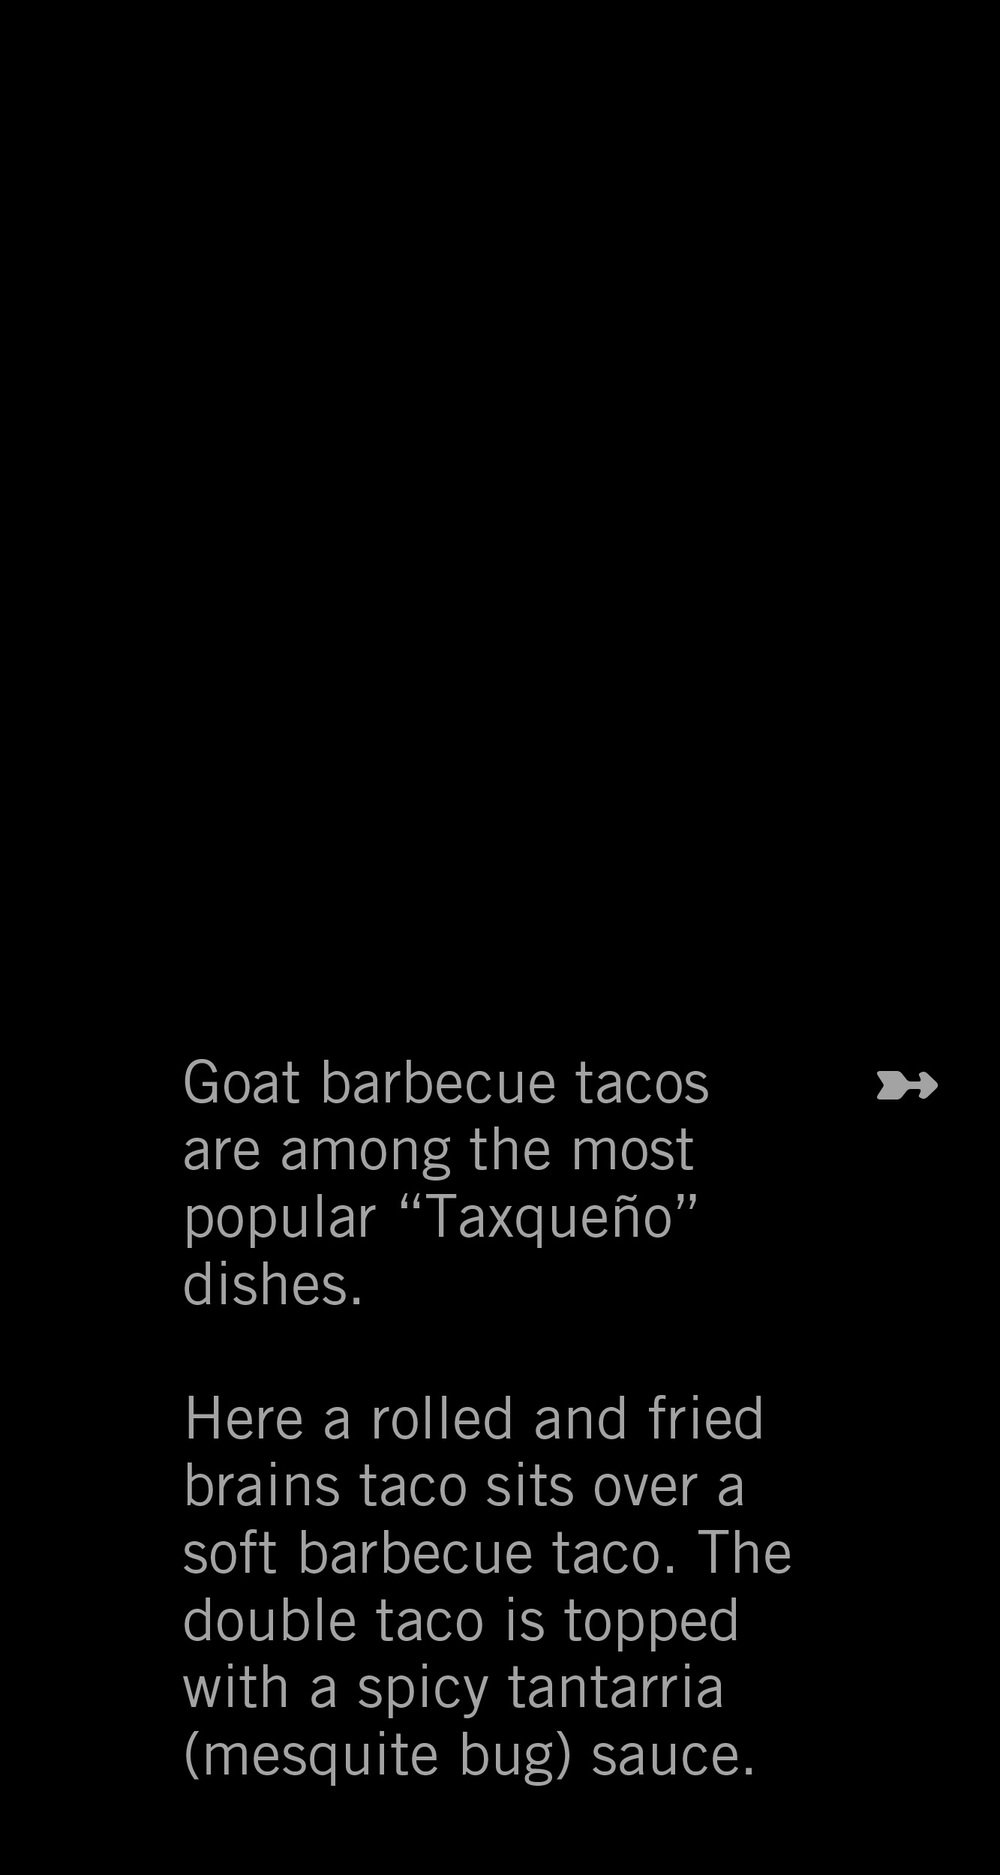 Goat Barbeque Tacos